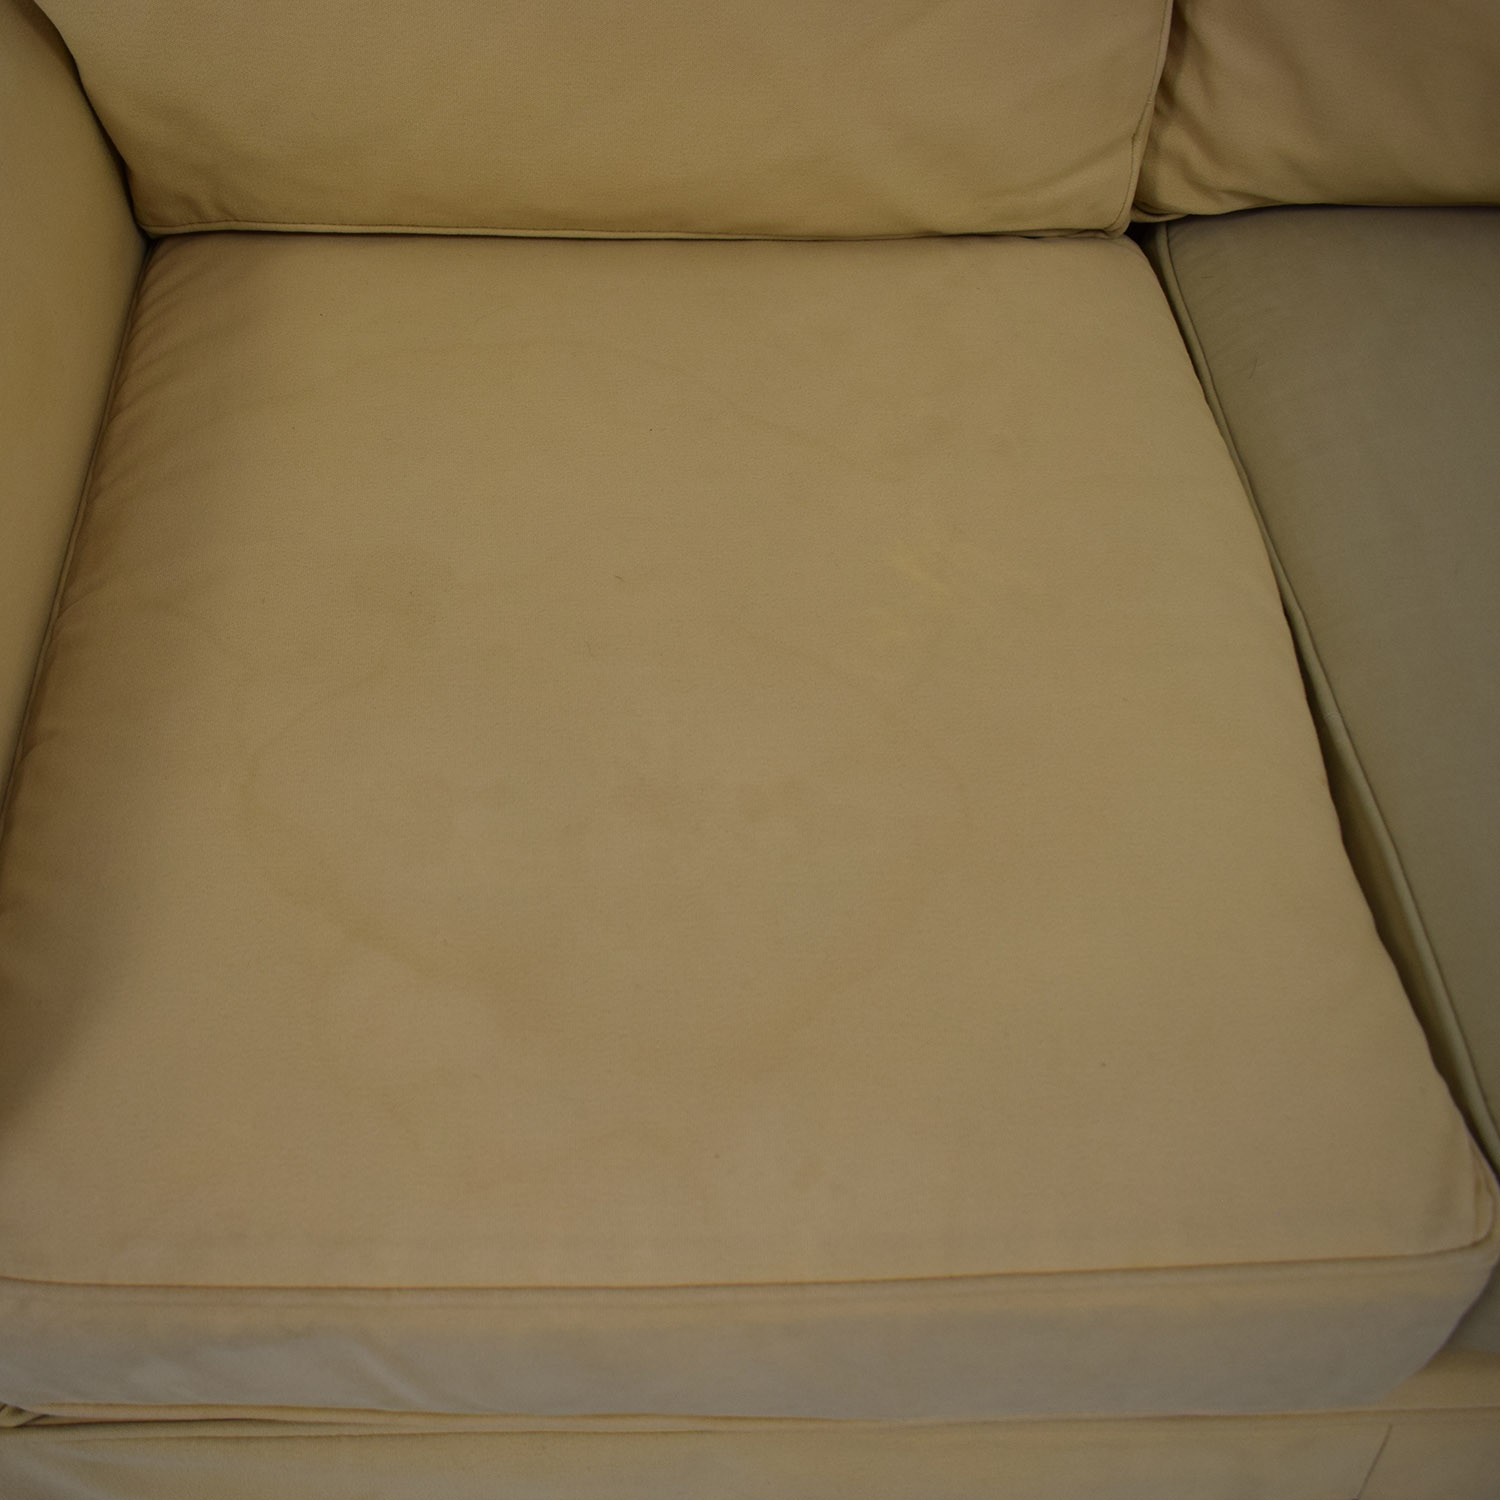 Pottery Barn PB Basic Slipcovered Sofa used